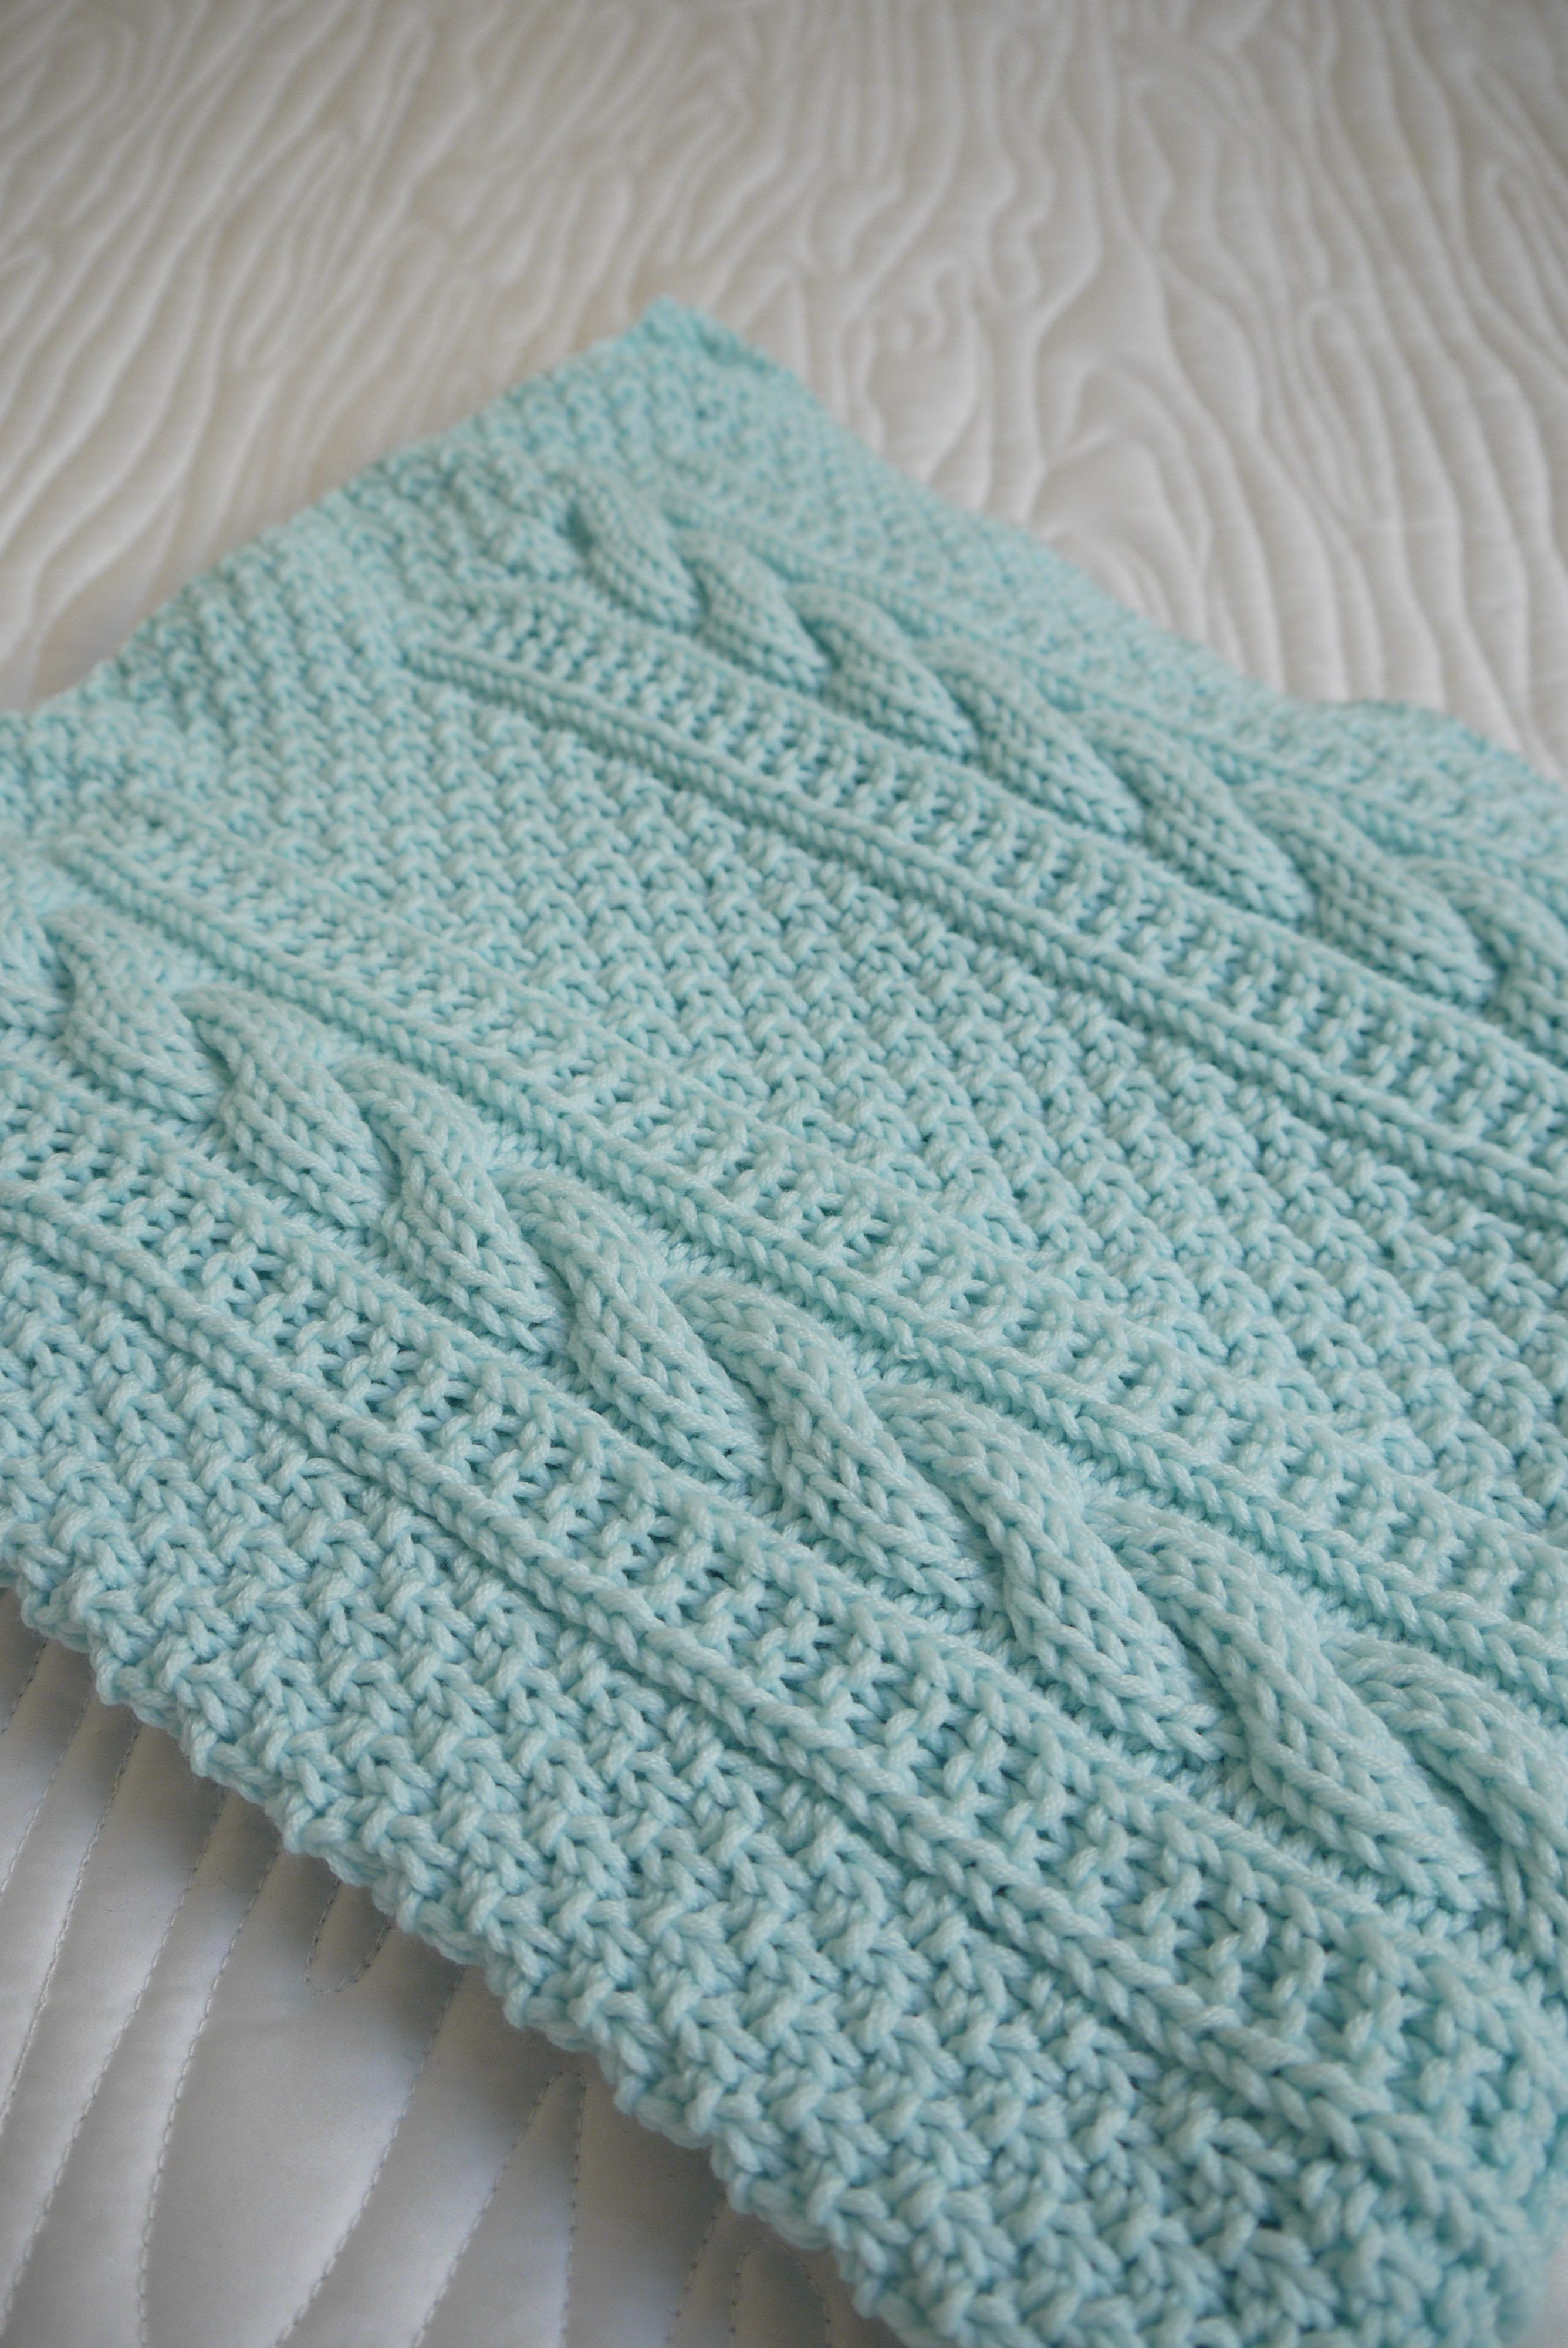 Knitted Blanket Patterns Lovely Baby Blanket Classic Cables Of Adorable 45 Photos Knitted Blanket Patterns